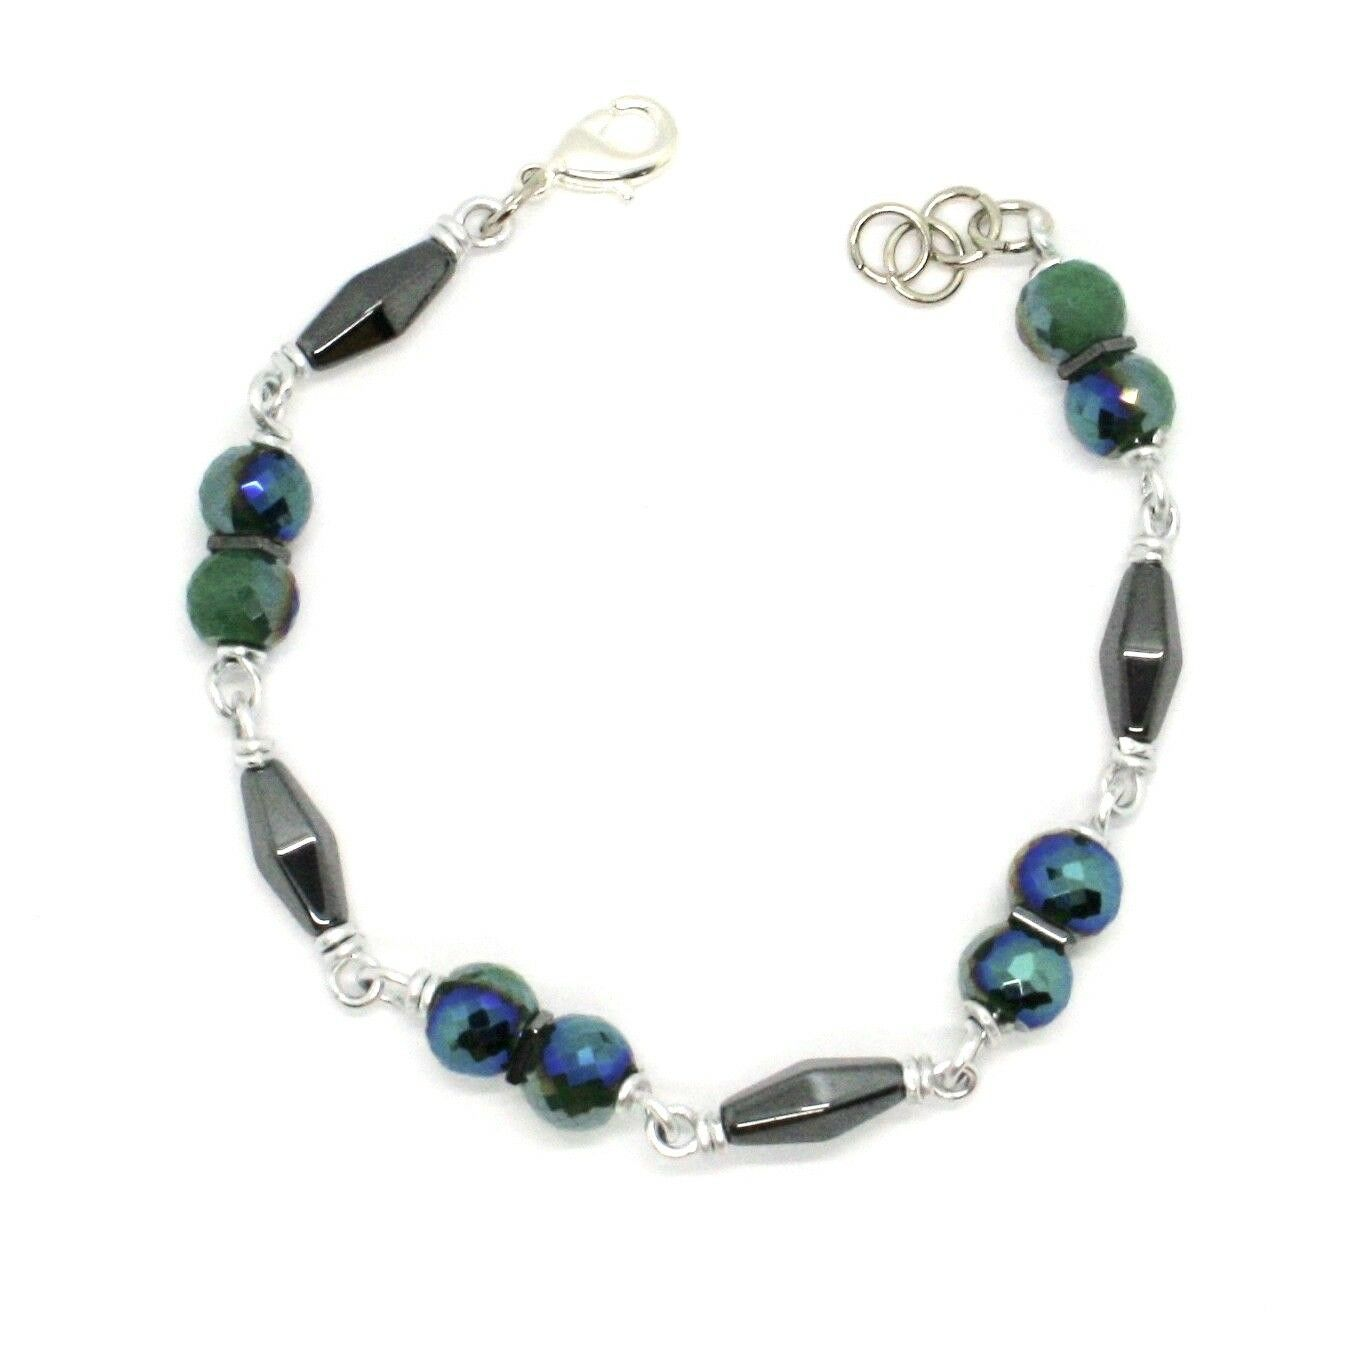 Bracelet the Aluminium Long 19 Inch with Hematite and Crystal Dark Green